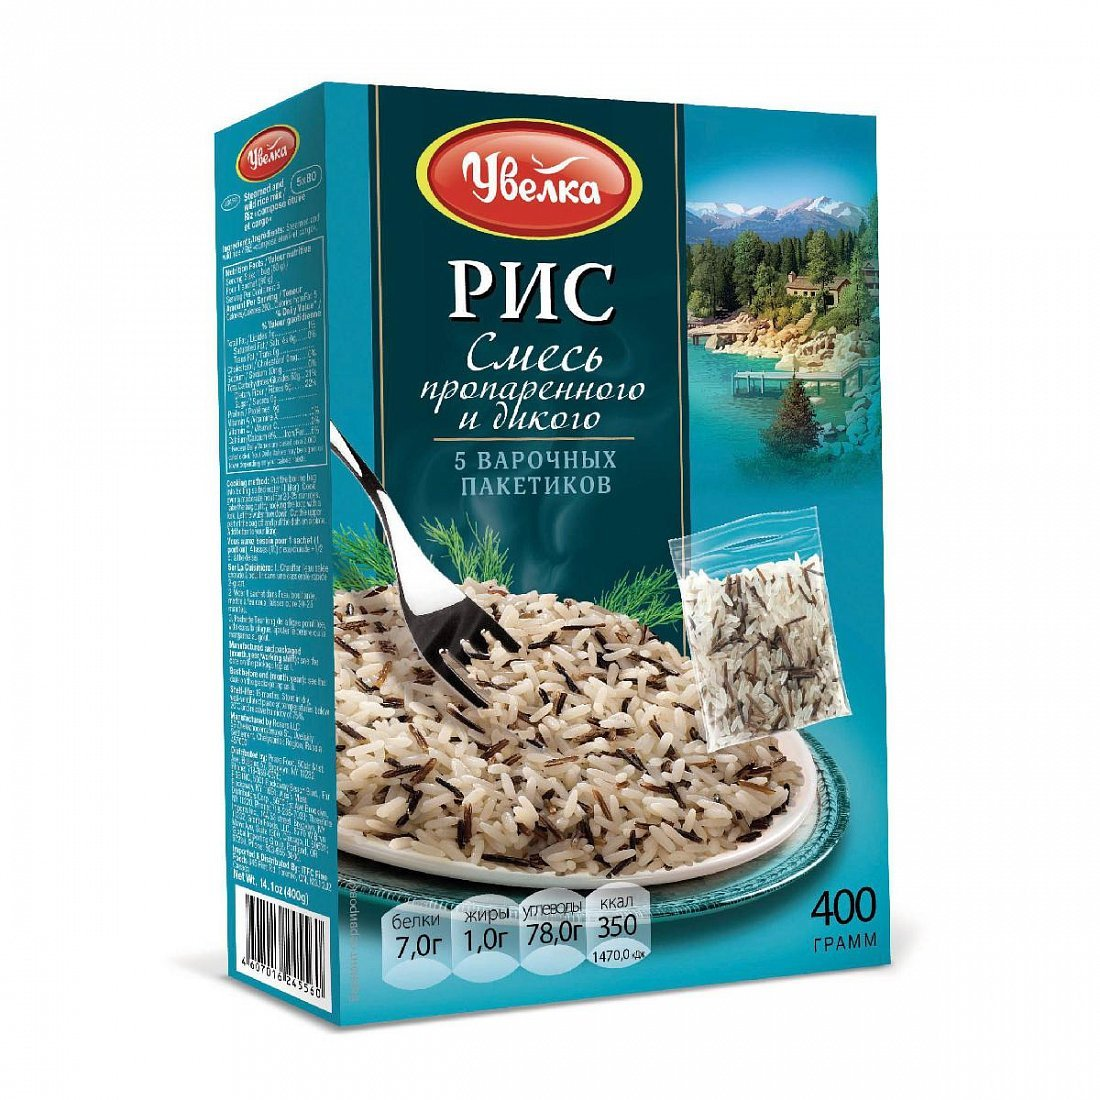 Mix of Steamed Long-Grain & Wild Rice, 5 bags x 80 g, Uvelka, 400 g/ 0.88 lb